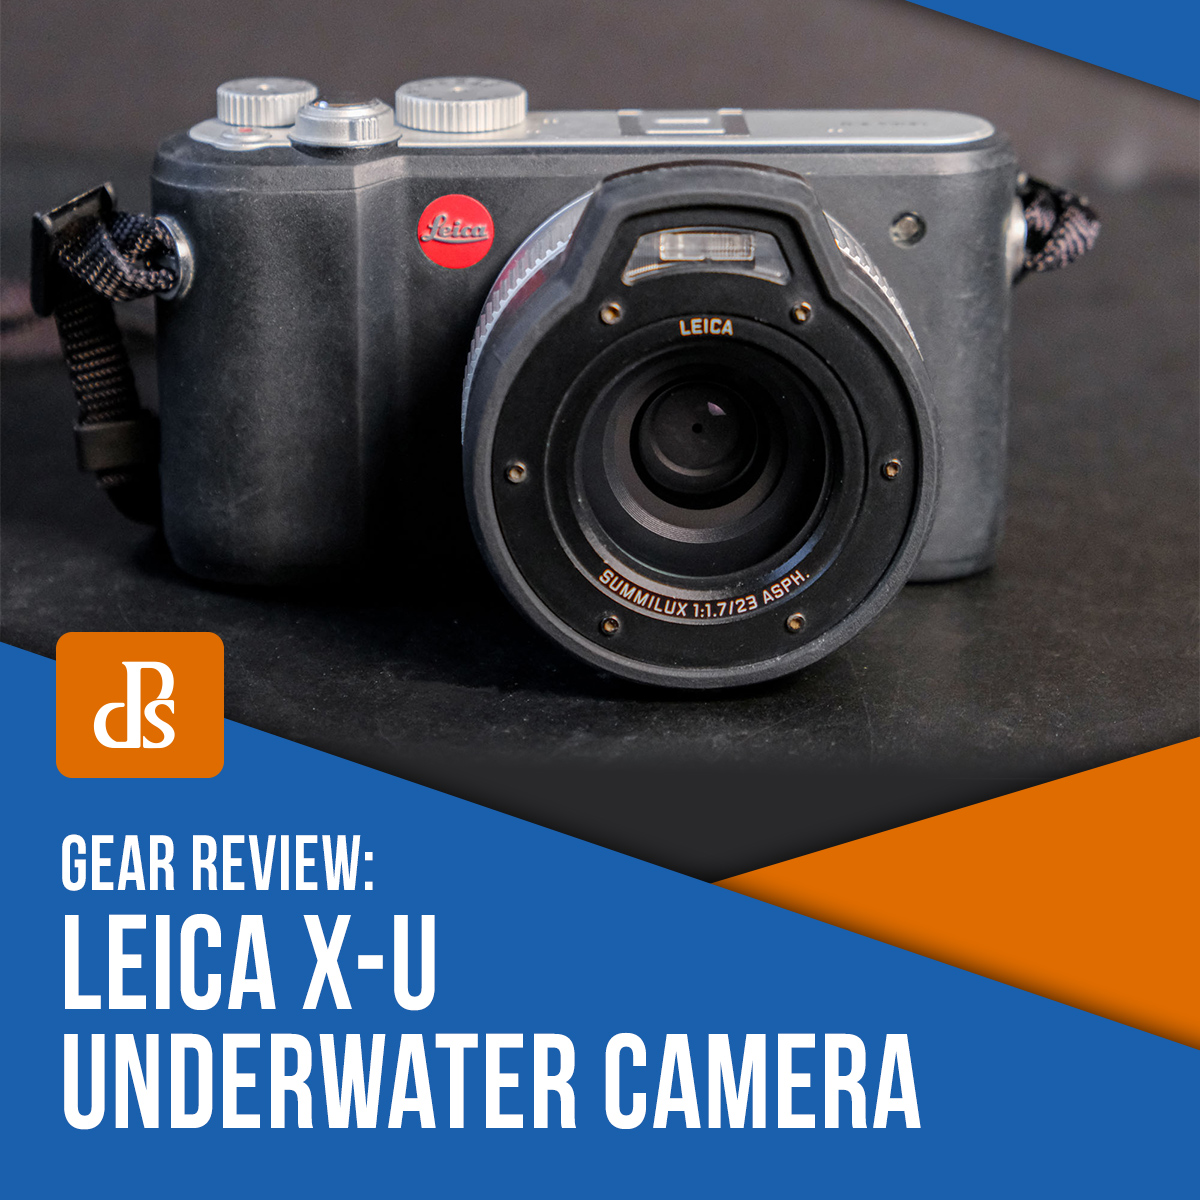 leica-x-u-underwater-camera-review